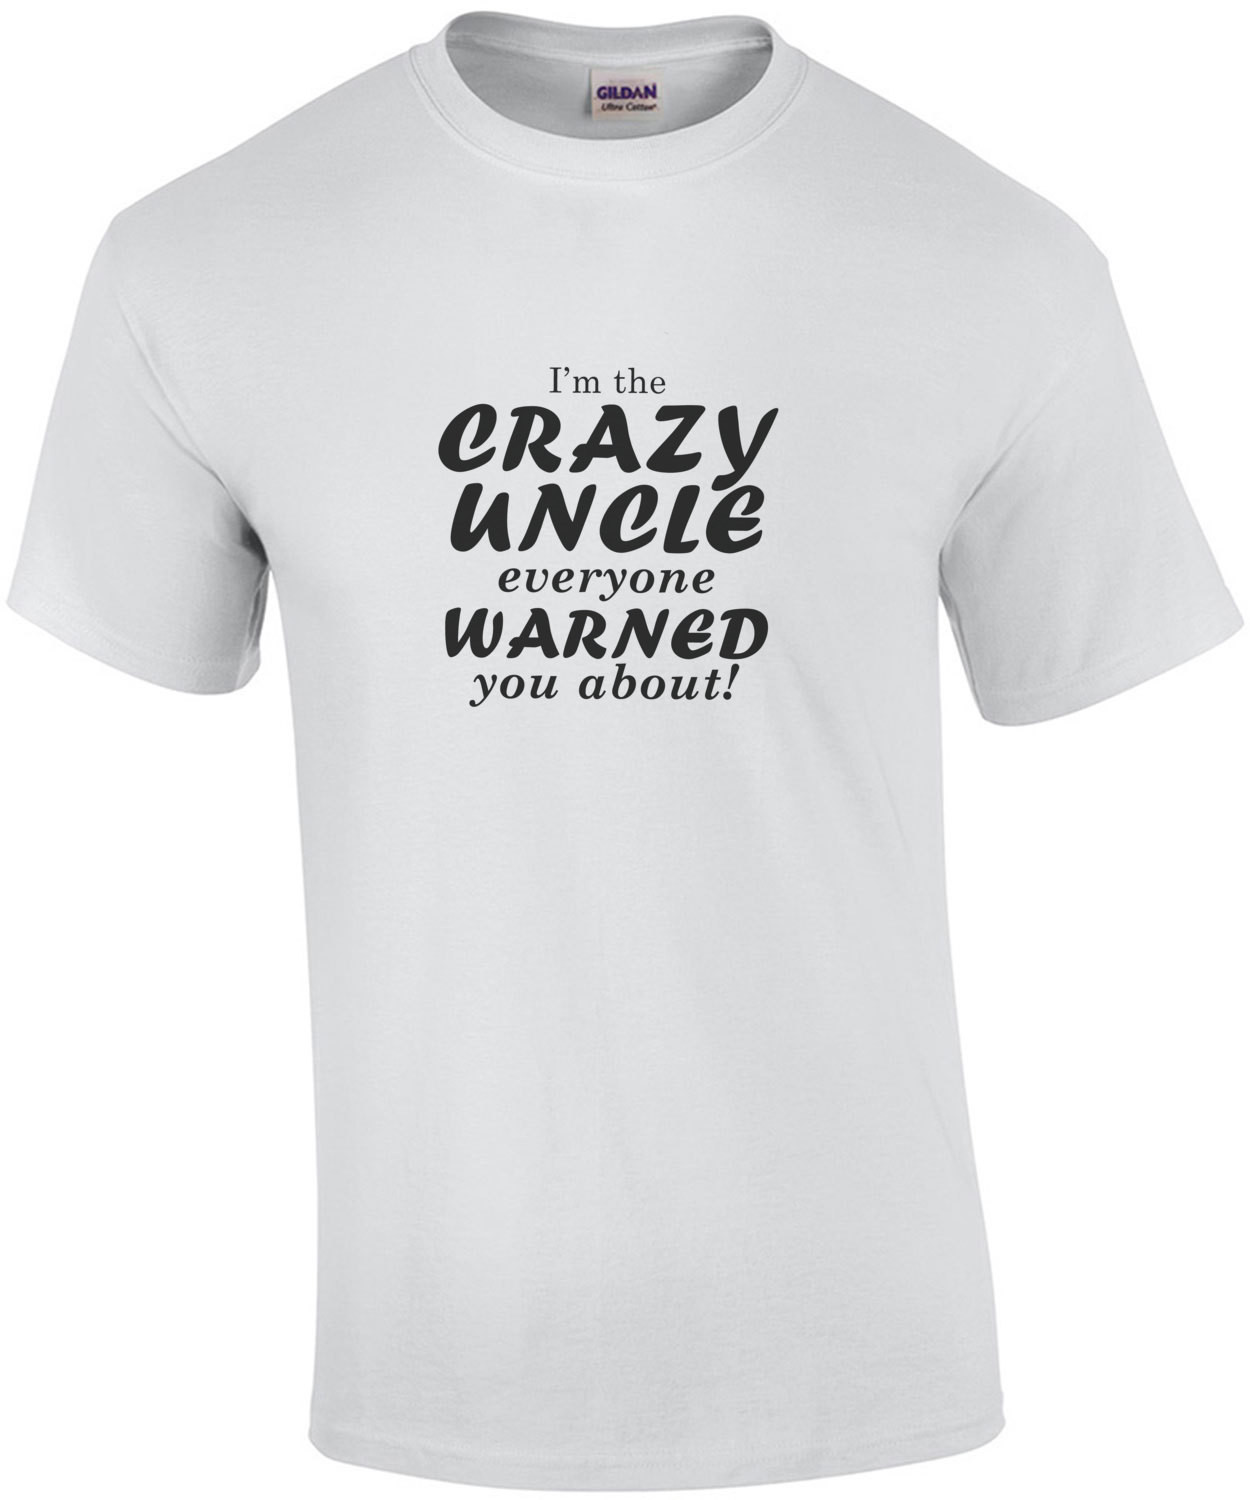 I'm the crazy uncle everyone warned you about! Funny Uncle T-Shirt